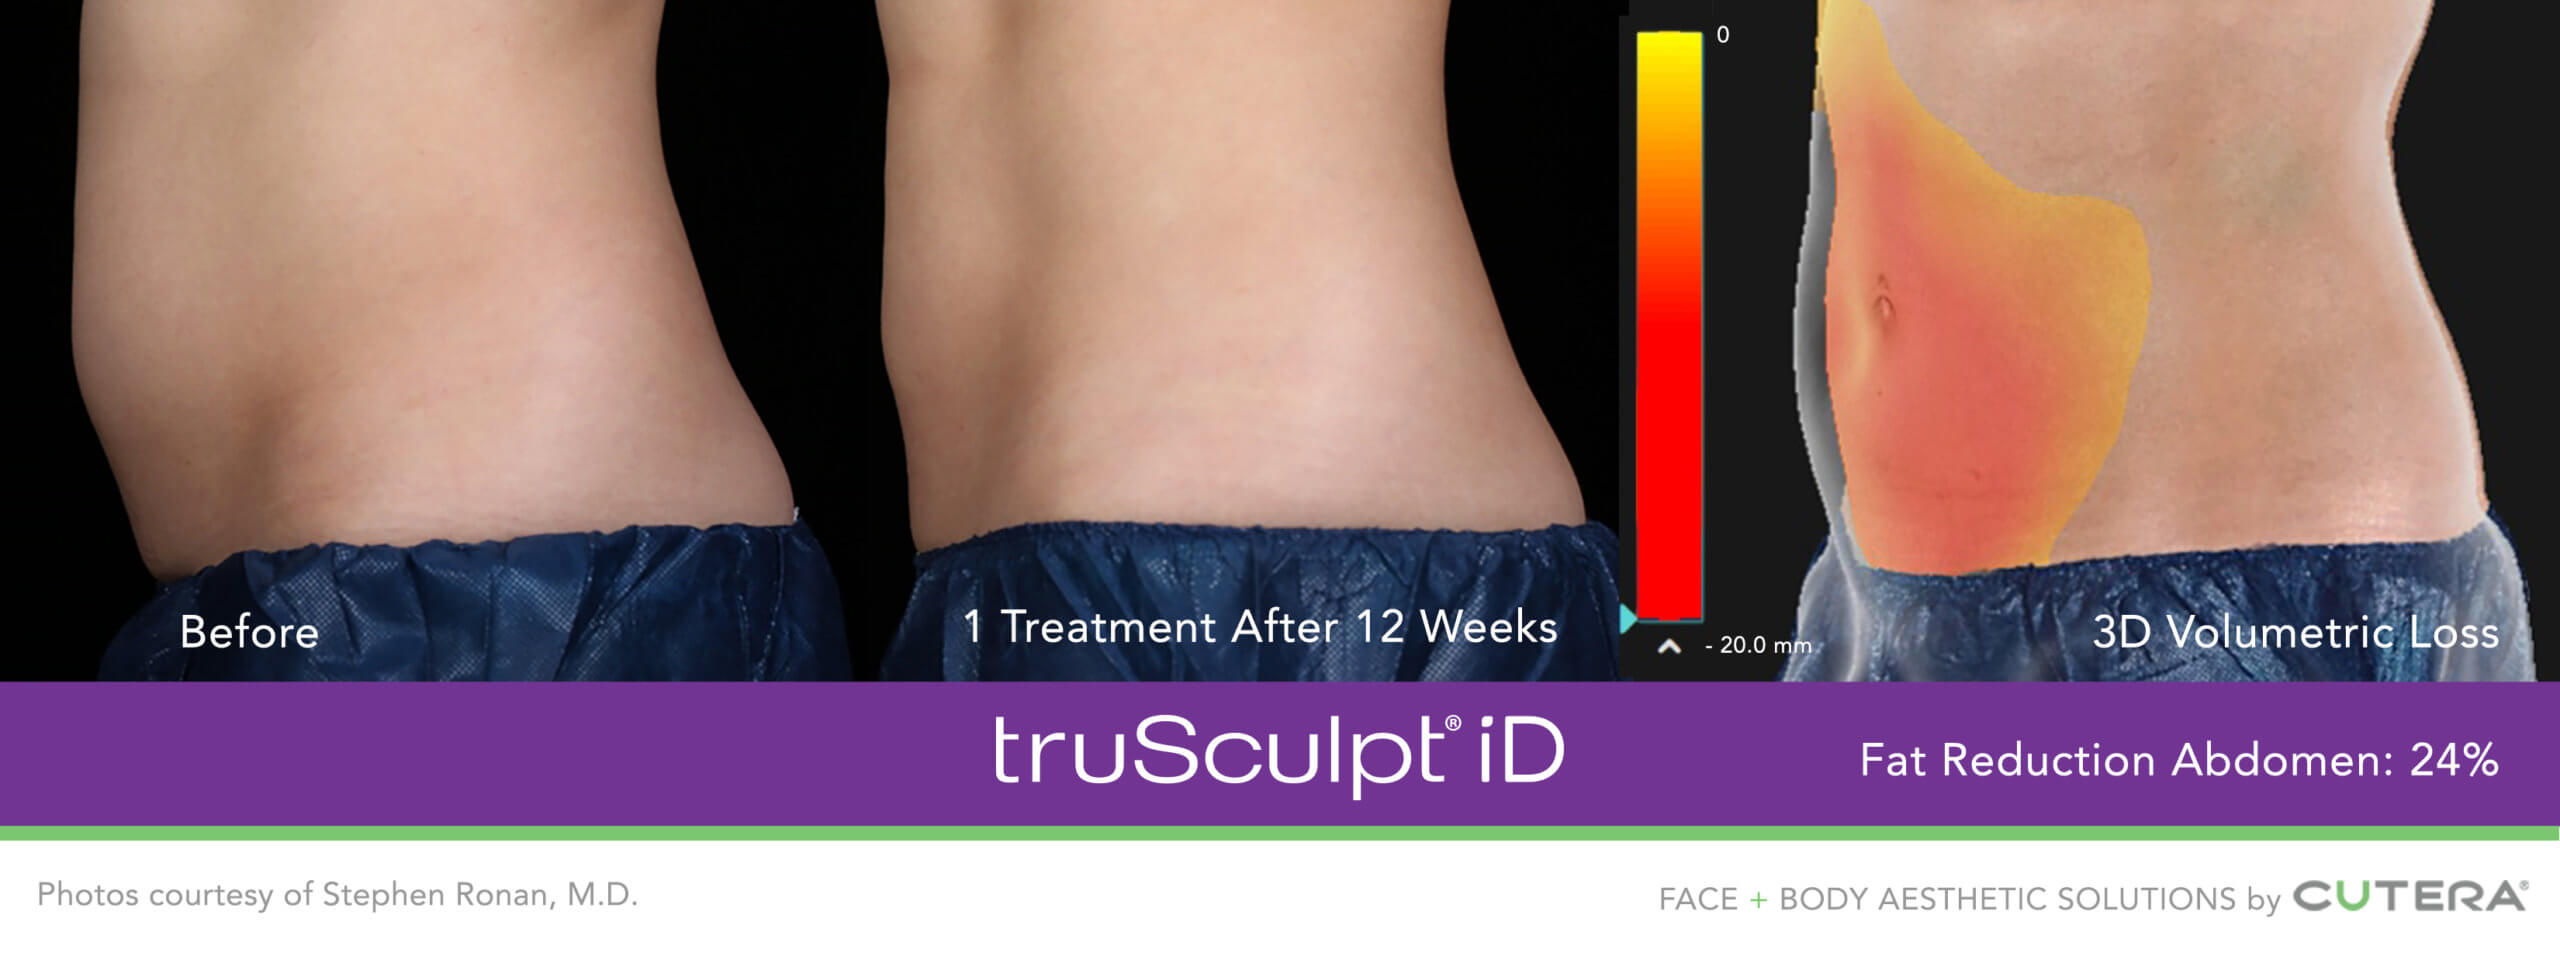 Before and After of the truSculpt iD treatment with a 3D photo showing the reduction in weight